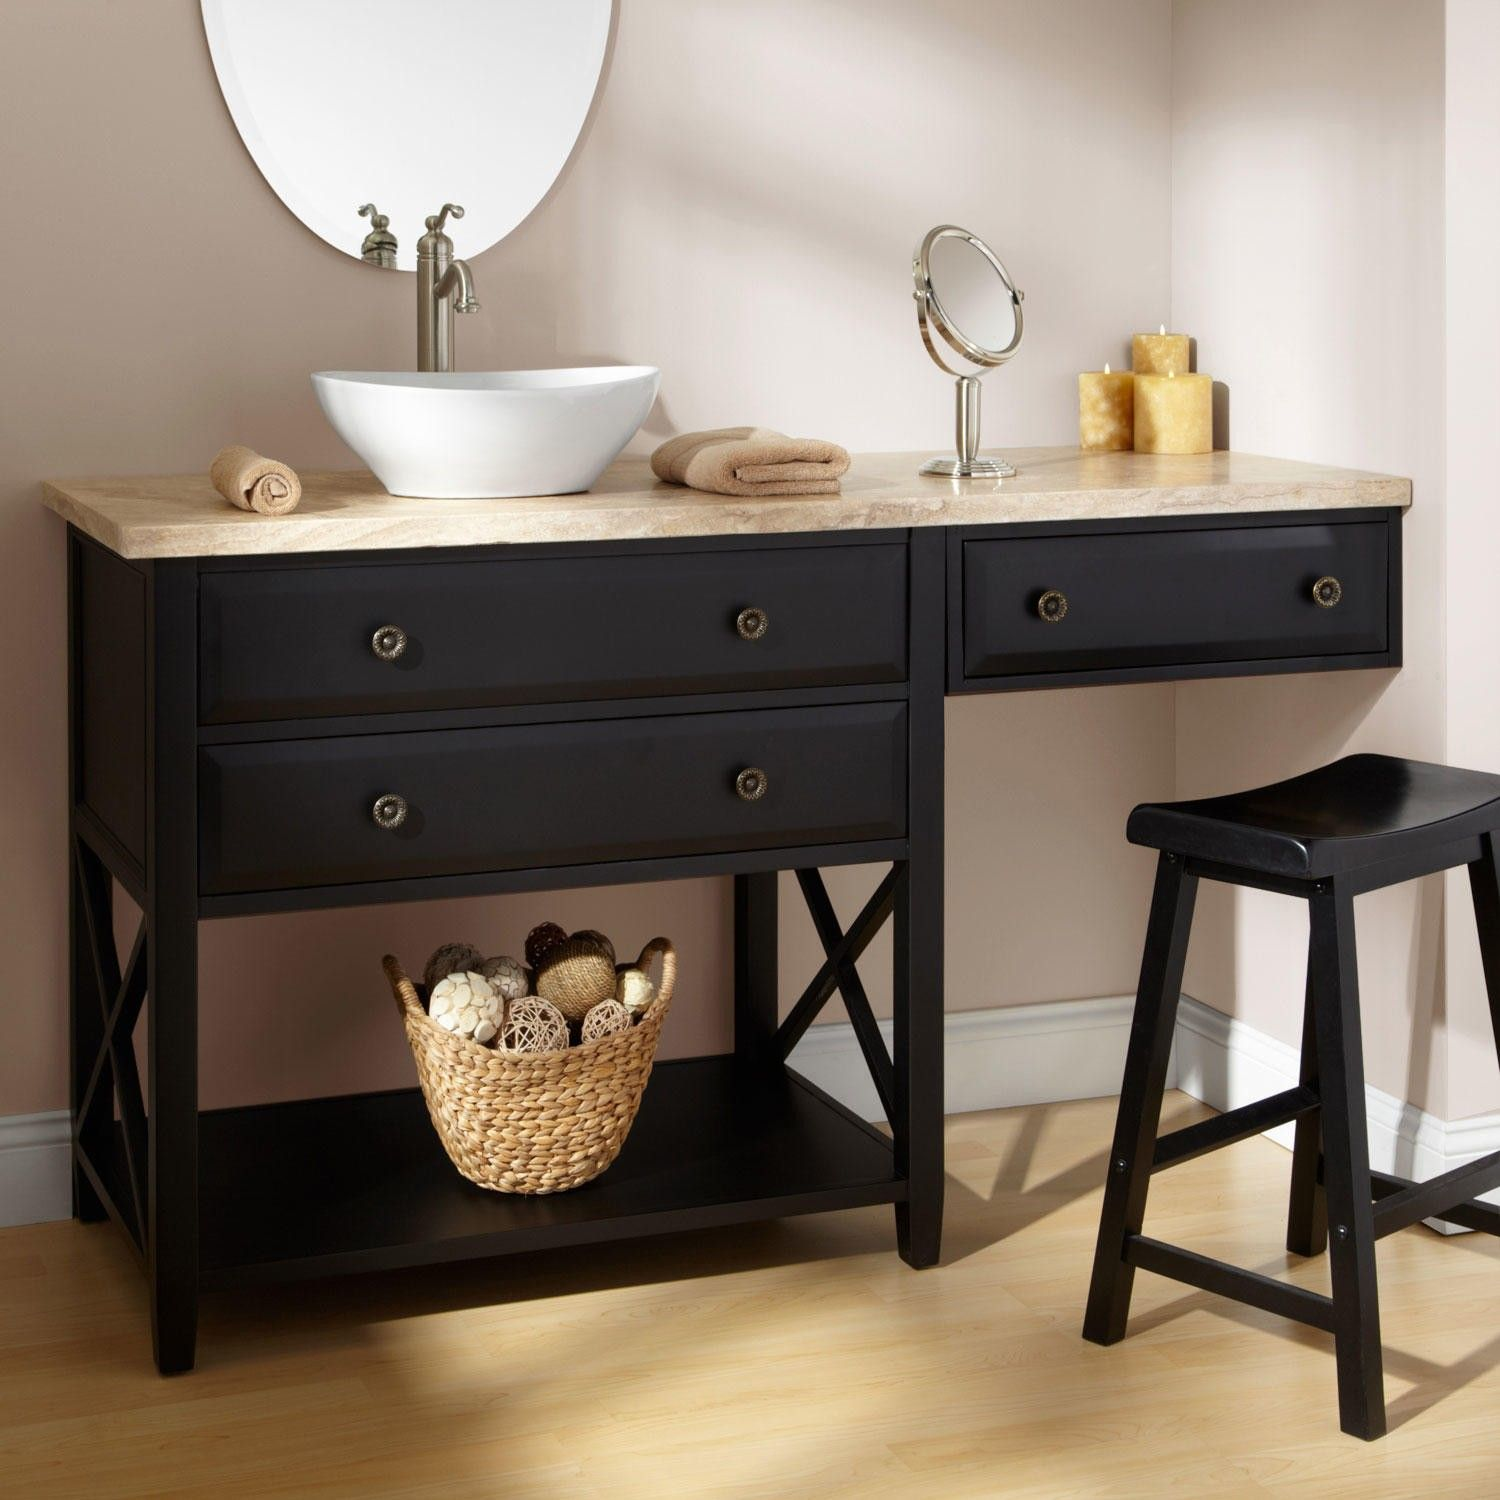 Bathroom vanity with makeup area 60 clinton black vanity for vessel sink with makeup